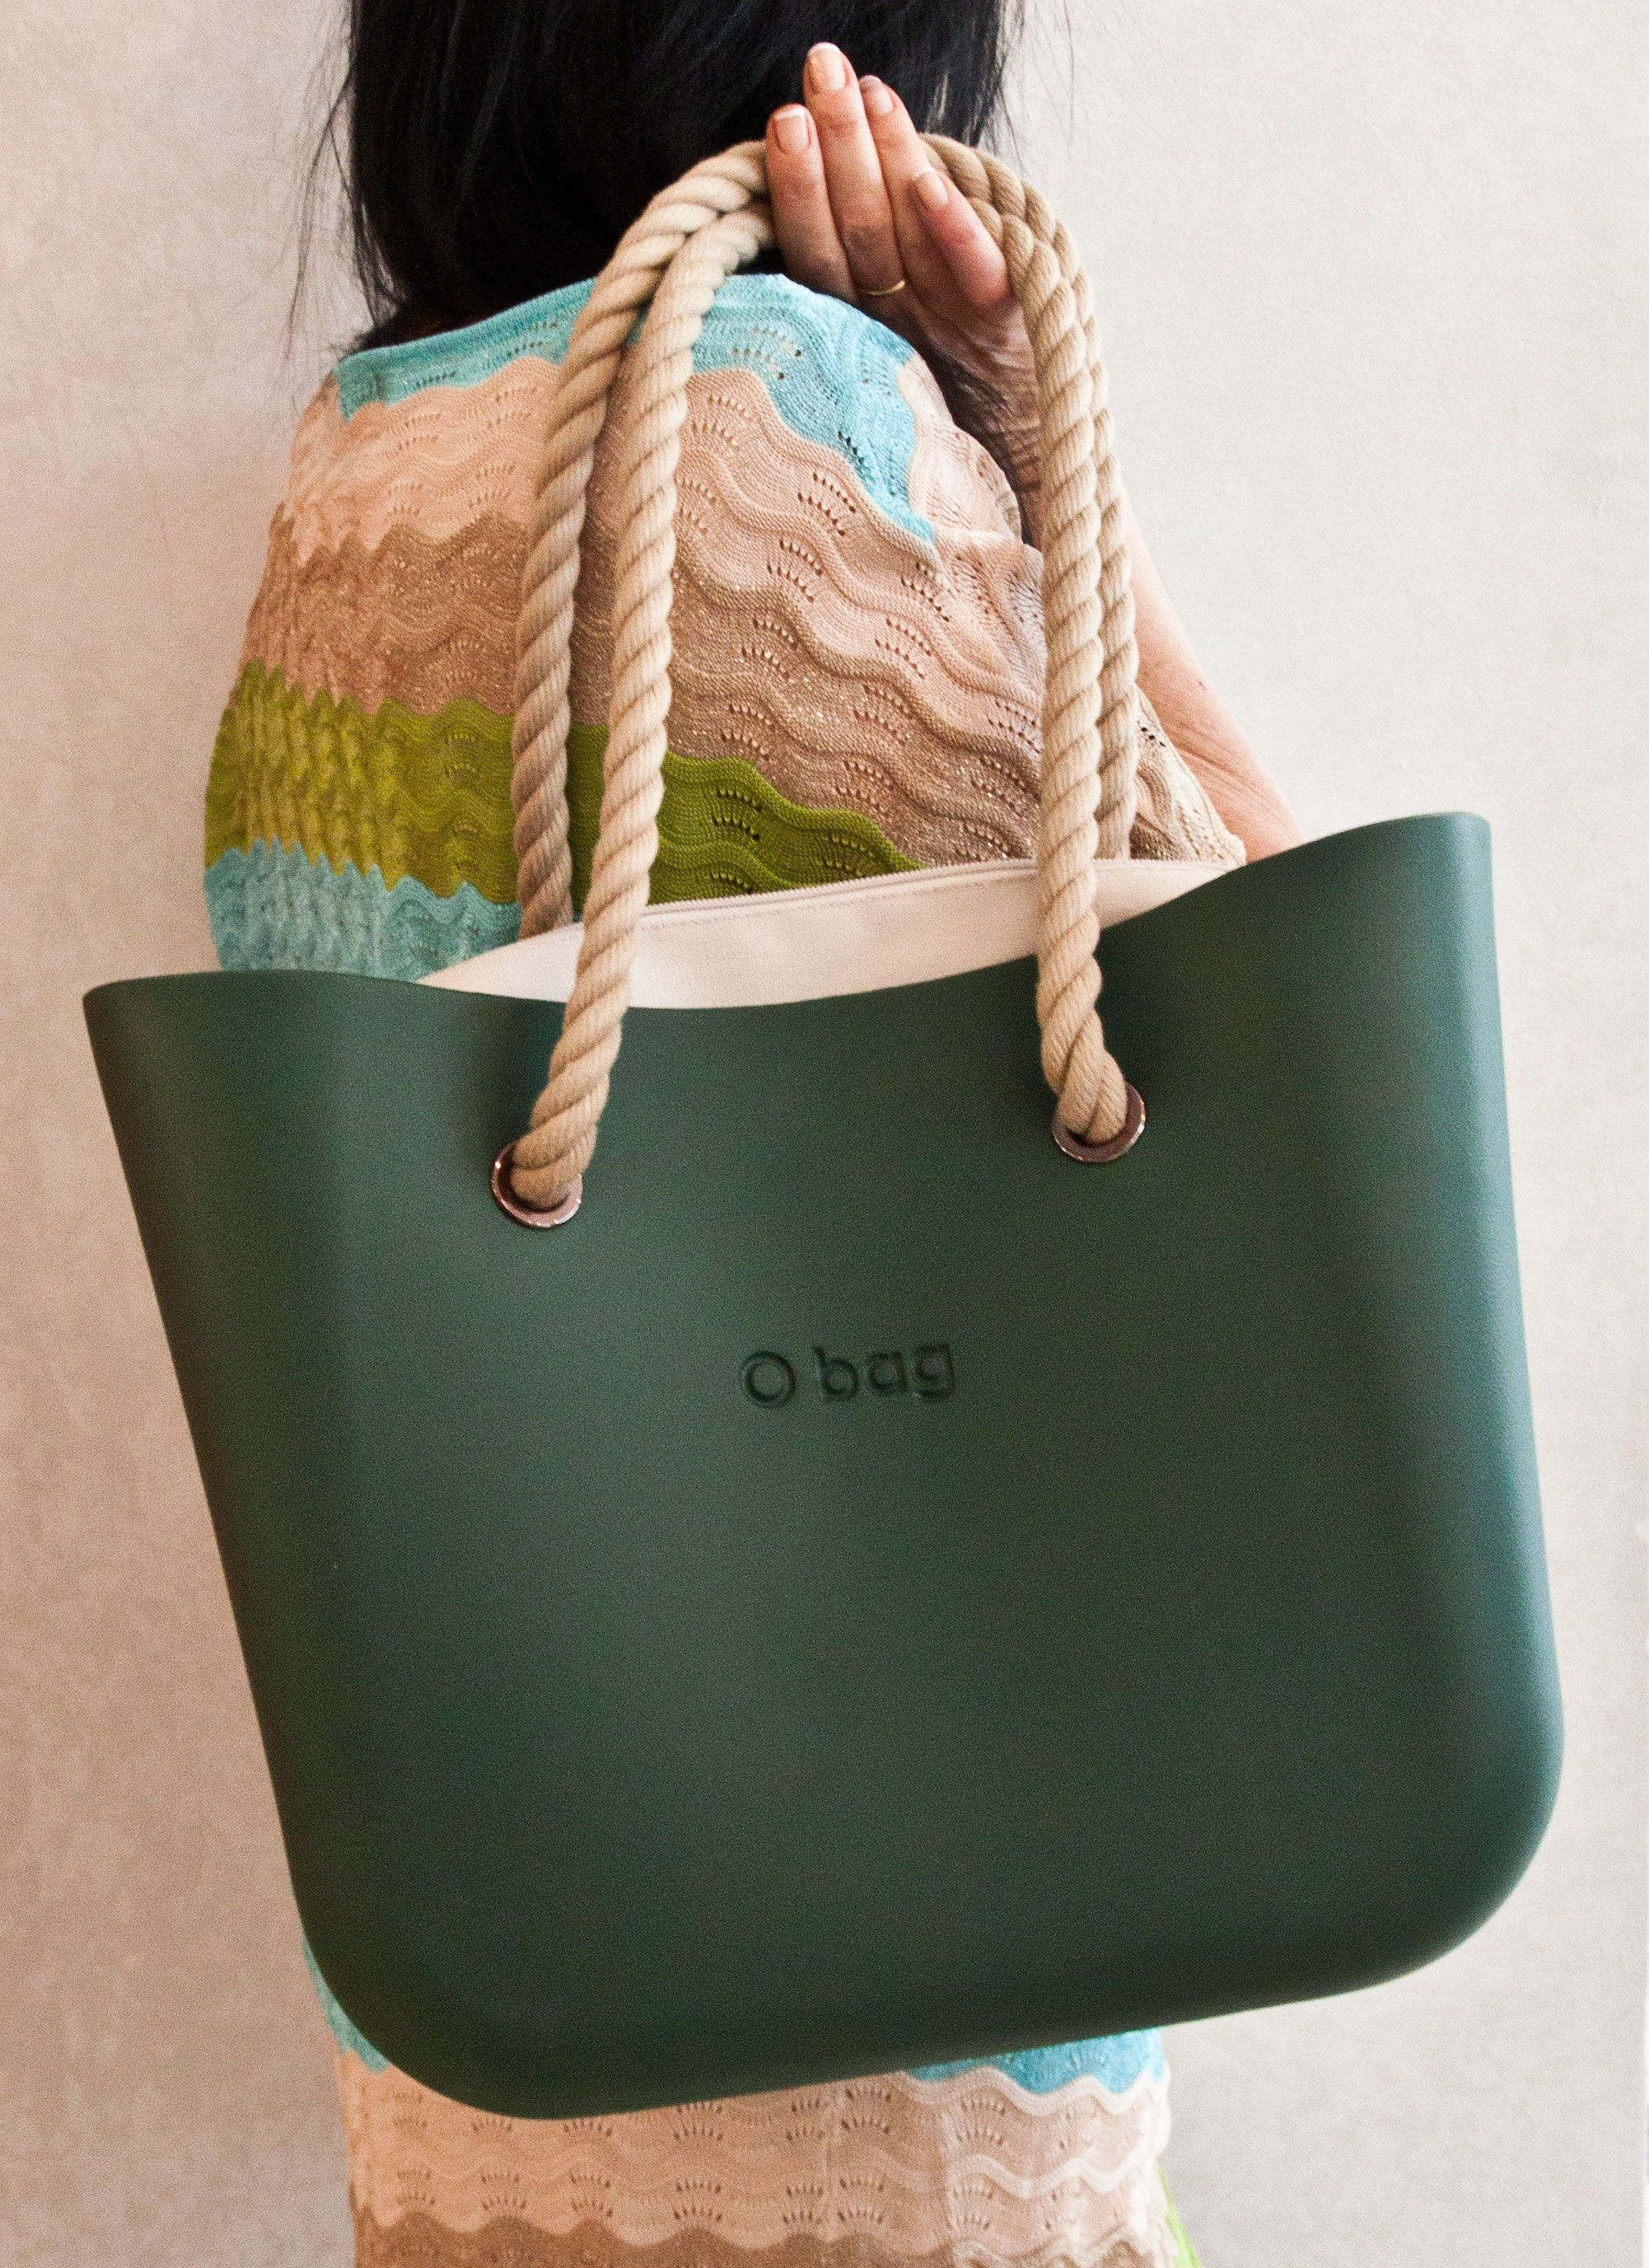 0 Bag Http Www Fullspot It Borse 2 Scocca Scocca O Bag Grigio Scuro Wishlist Pinterest